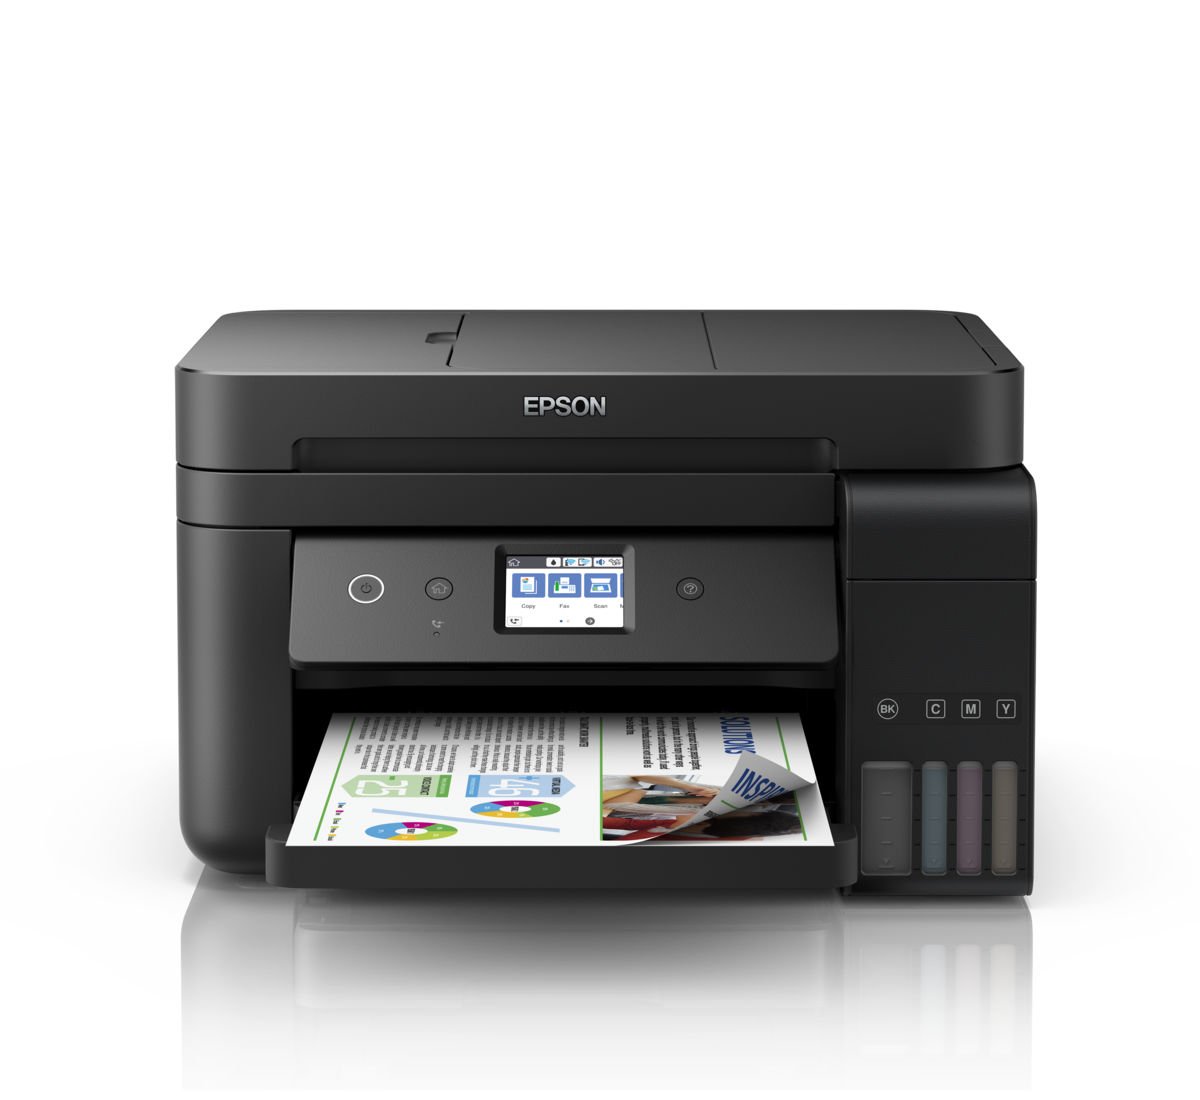 Ecotank L6190 Wi Fi Duplex Multifunction Inktank Printer With Adf Ecotank Printers Printers For Home Epson India